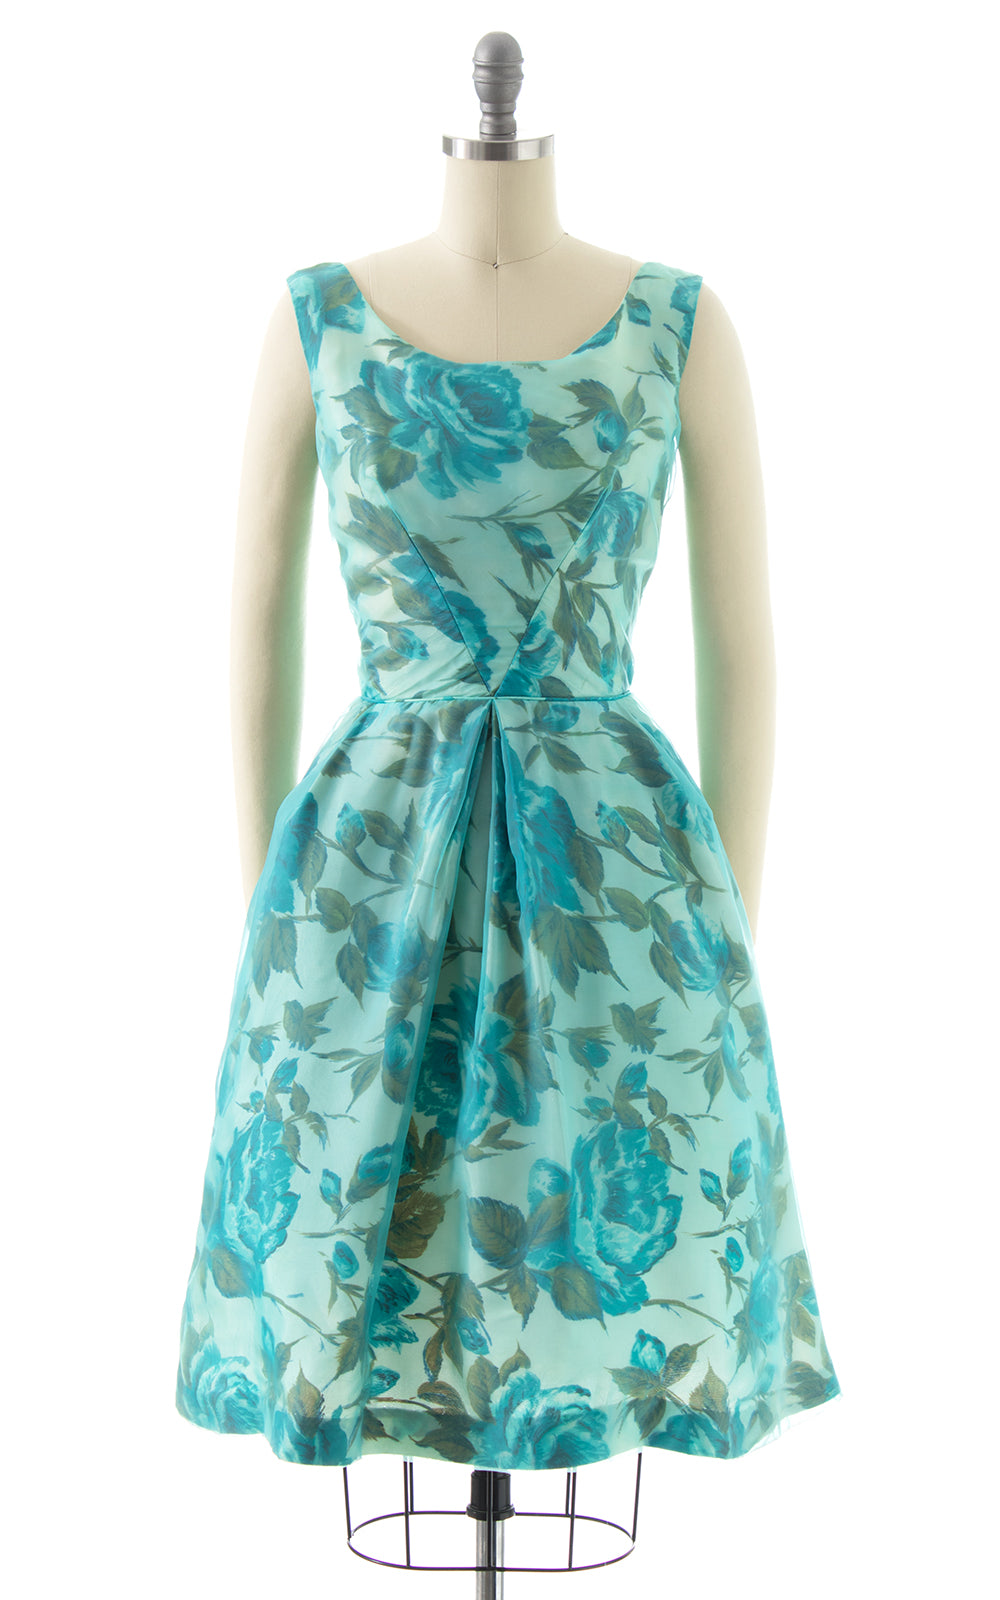 1960s Blue Rose Chiffon Overlay Party Dress